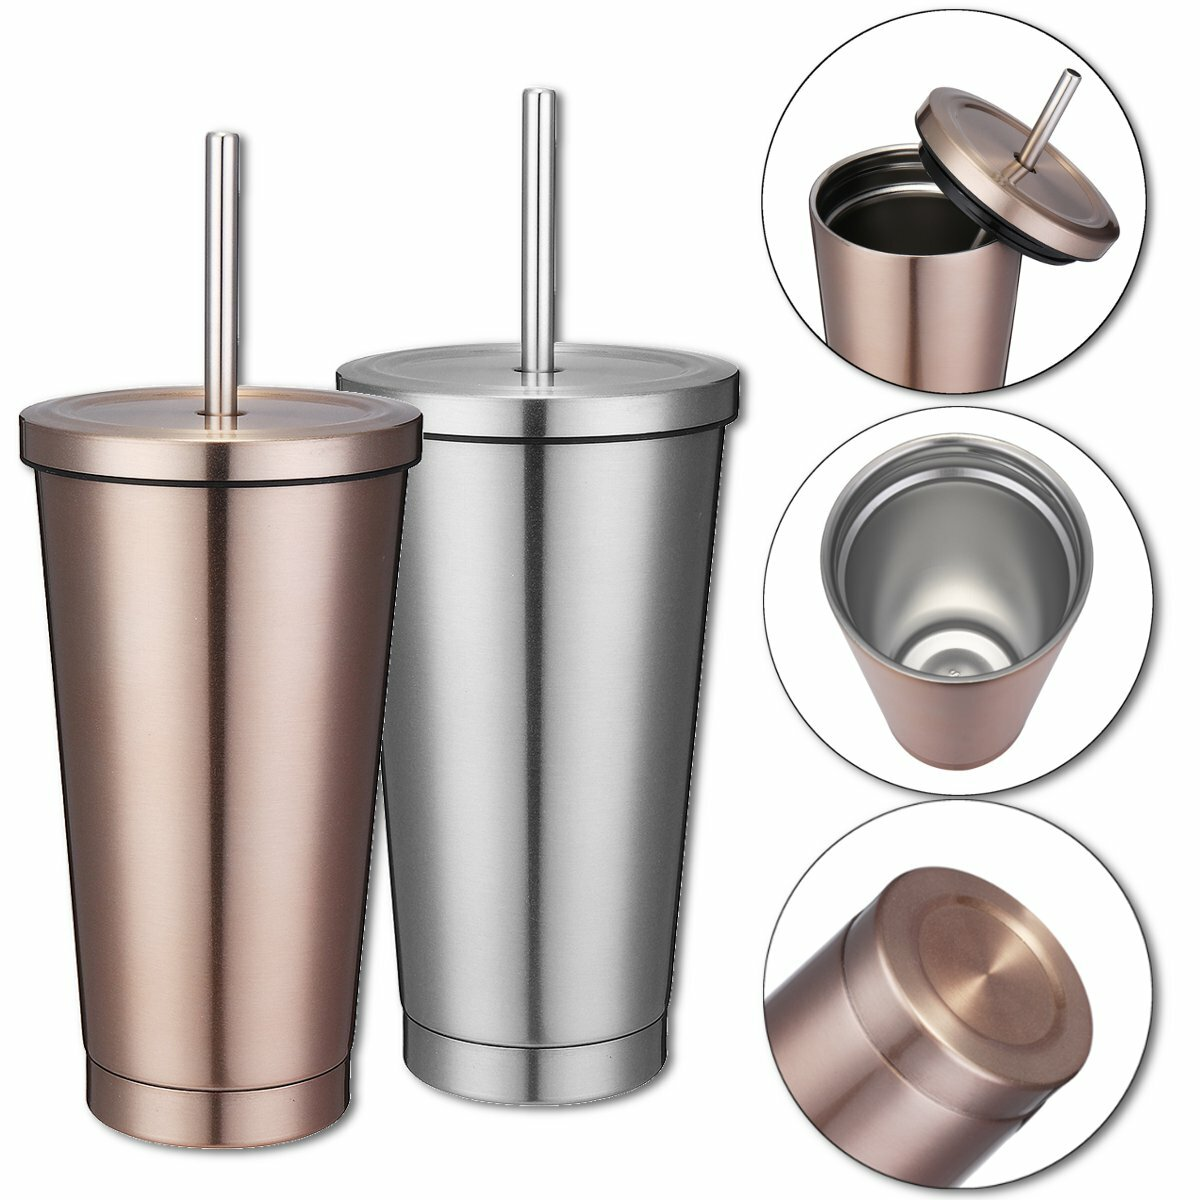 500ml stainless steel mug